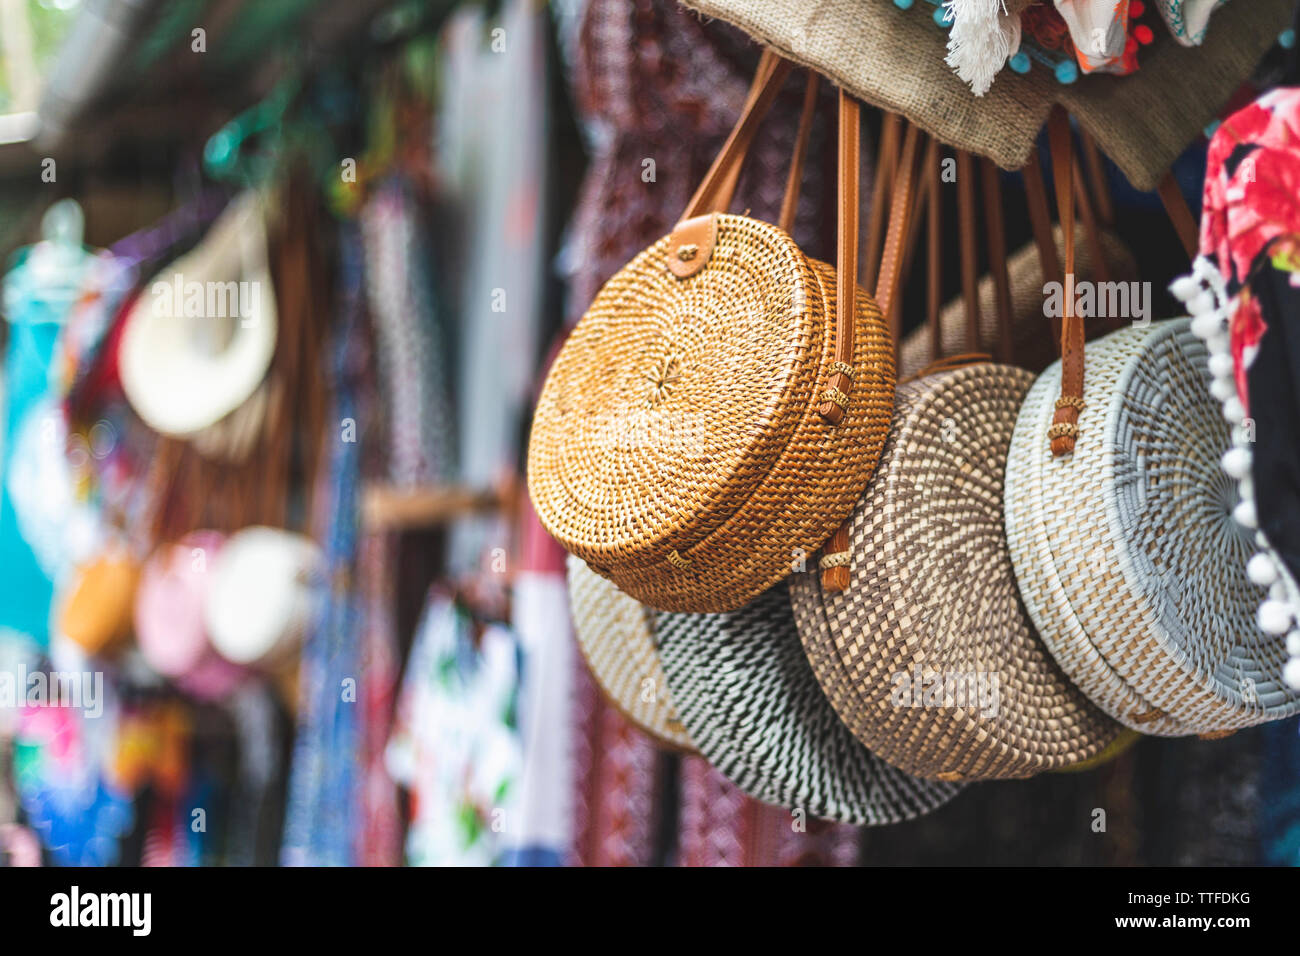 Woven Purses for Sale at a Local Market in Bali, Indonesia - Stock Image